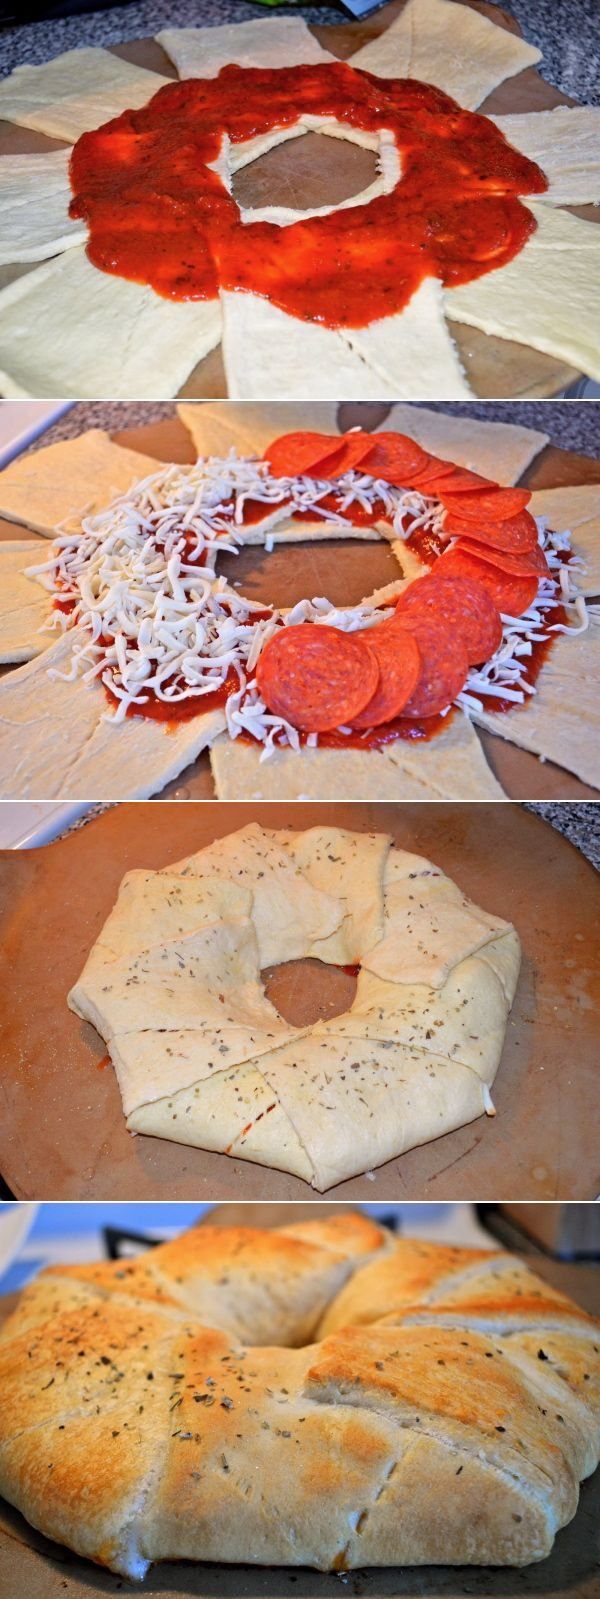 TESTED....Pizza Ring. Couldn't be easier to make!!!  Fun food, a little different than pizza. Make sure to overlap the rolls in the middle.